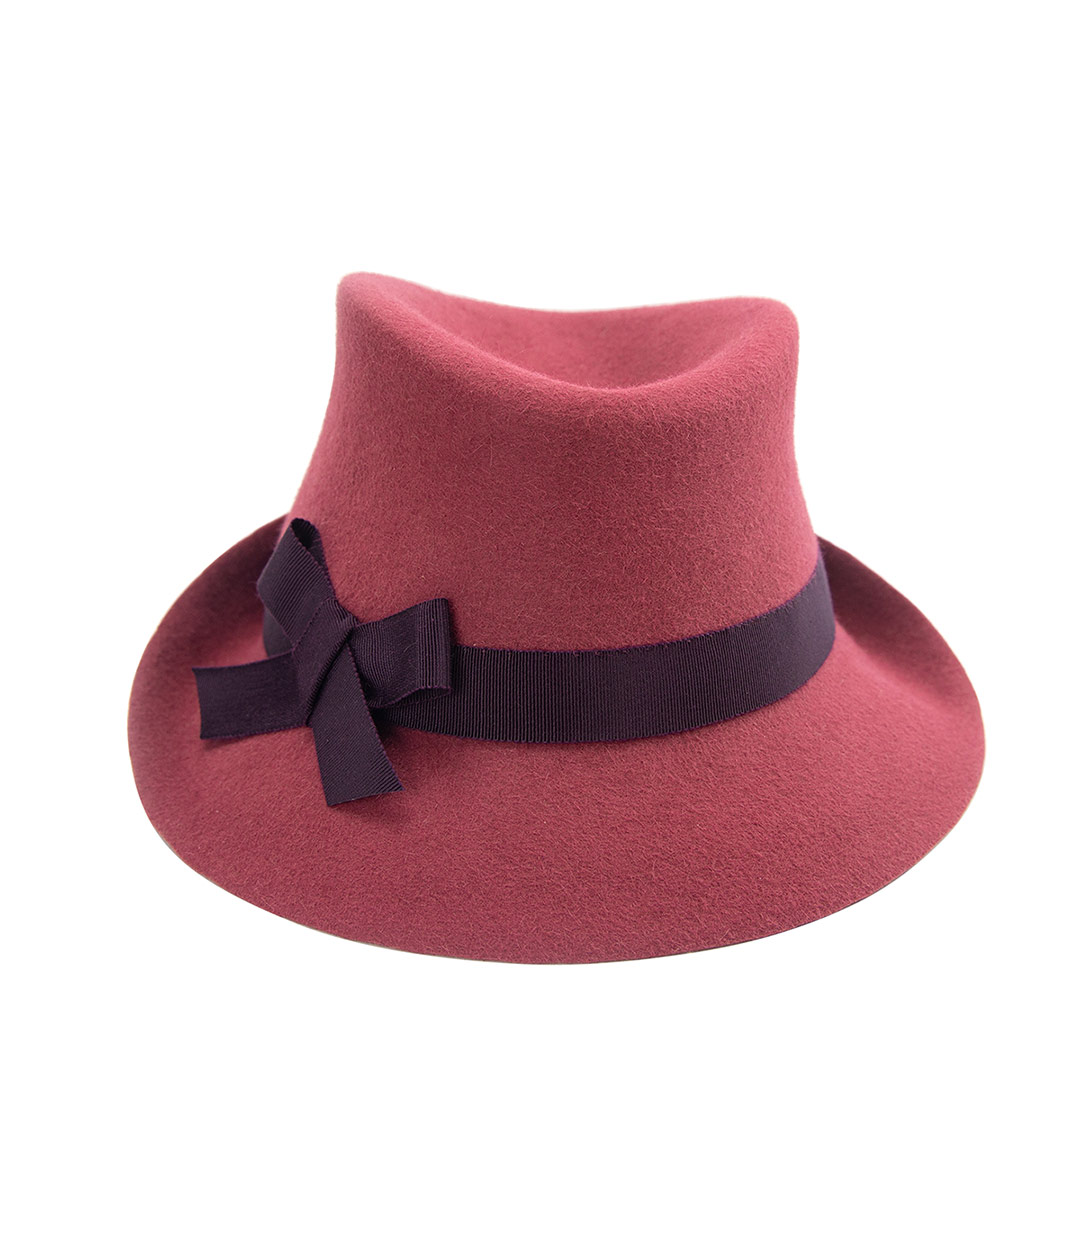 Front view of 1940s-style ladies hat in cinnamon red felt